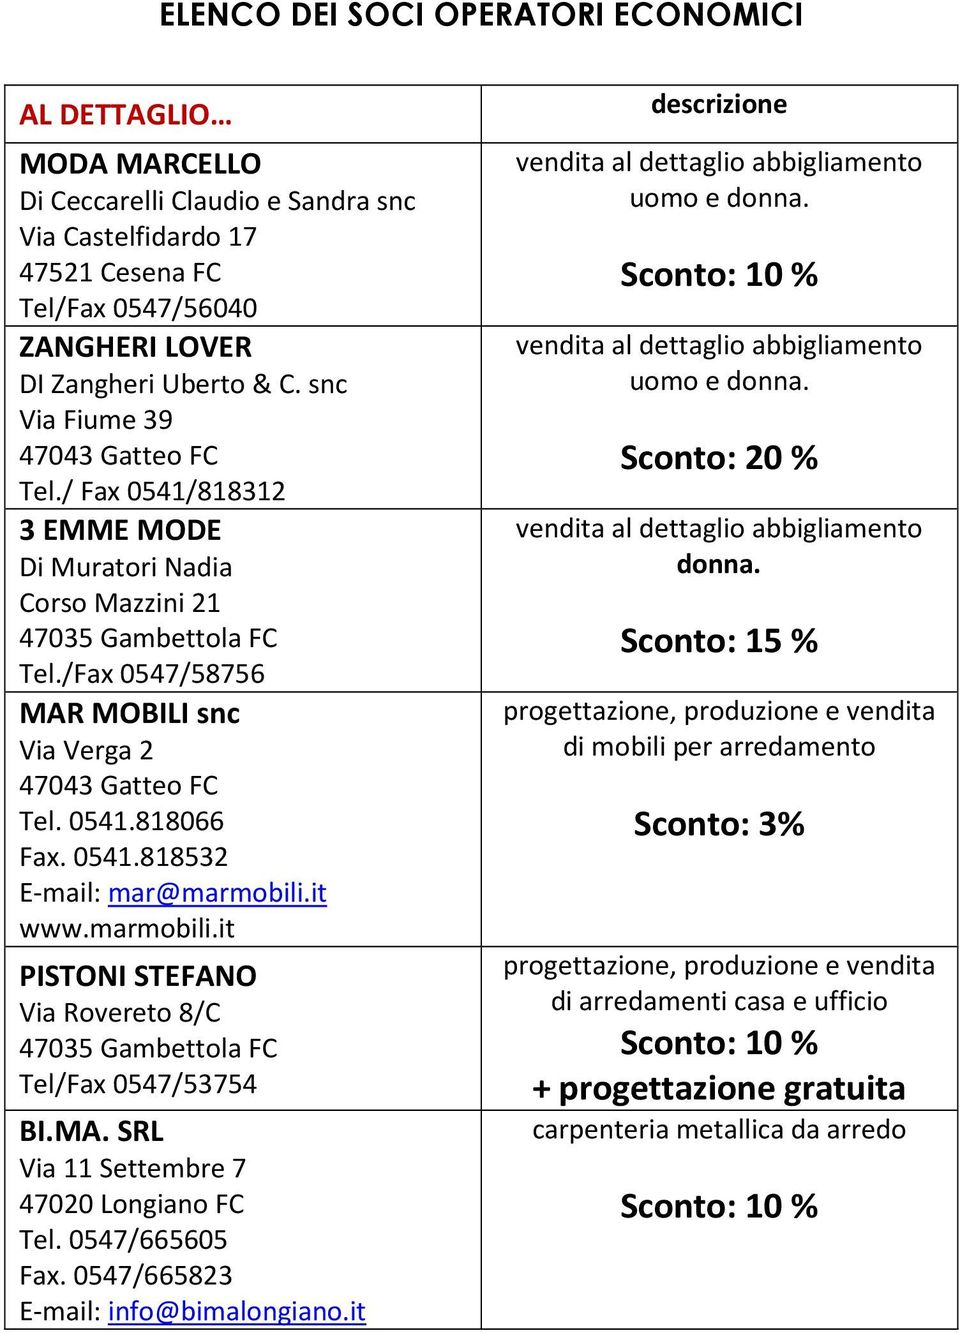 it www.marmobili.it PISTONI STEFANO Via Rovereto 8/C Tel/Fax 0547/53754 BI.MA. SRL Via 11 Settembre 7 47020 Longiano FC Tel. 0547/665605 Fax. 0547/665823 E-mail: info@bimalongiano.it uomo e donna.